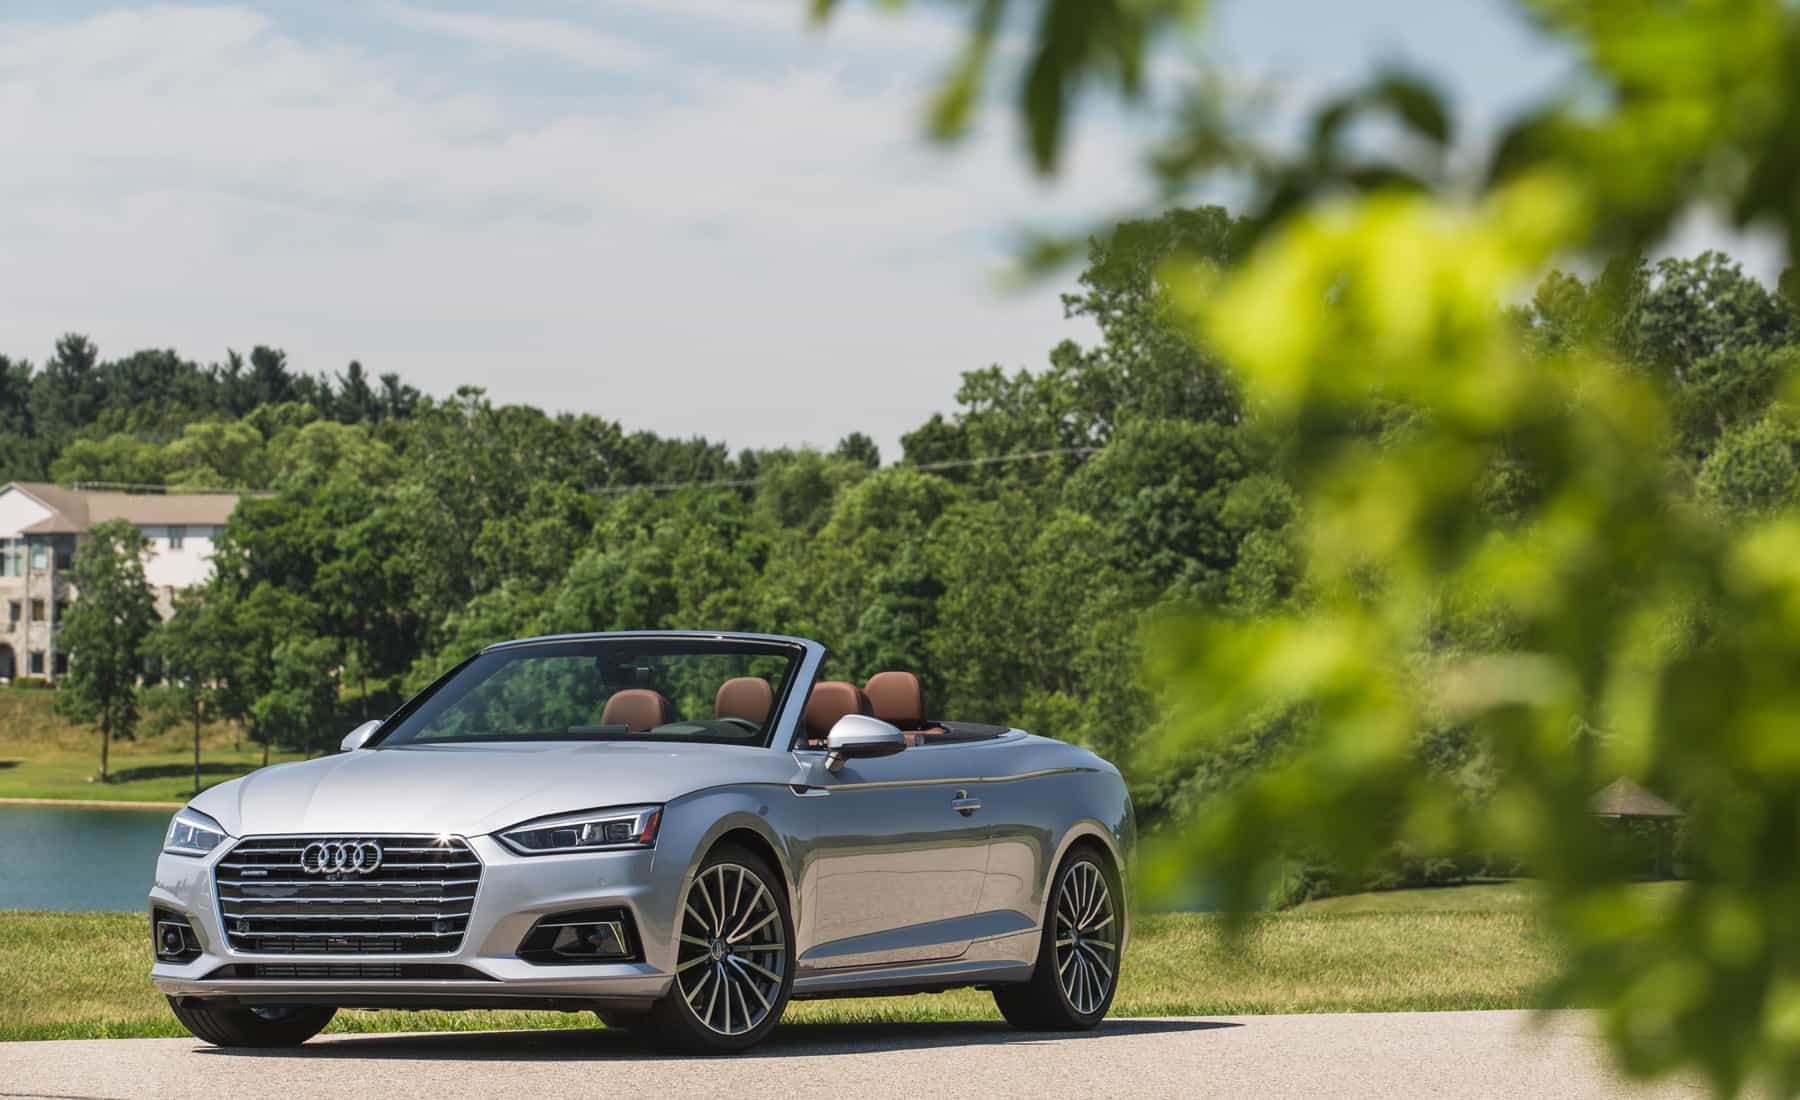 2018 Audi A5 Cabriolet Exterior Roof Open Side And Front (Photo 43 of 45)